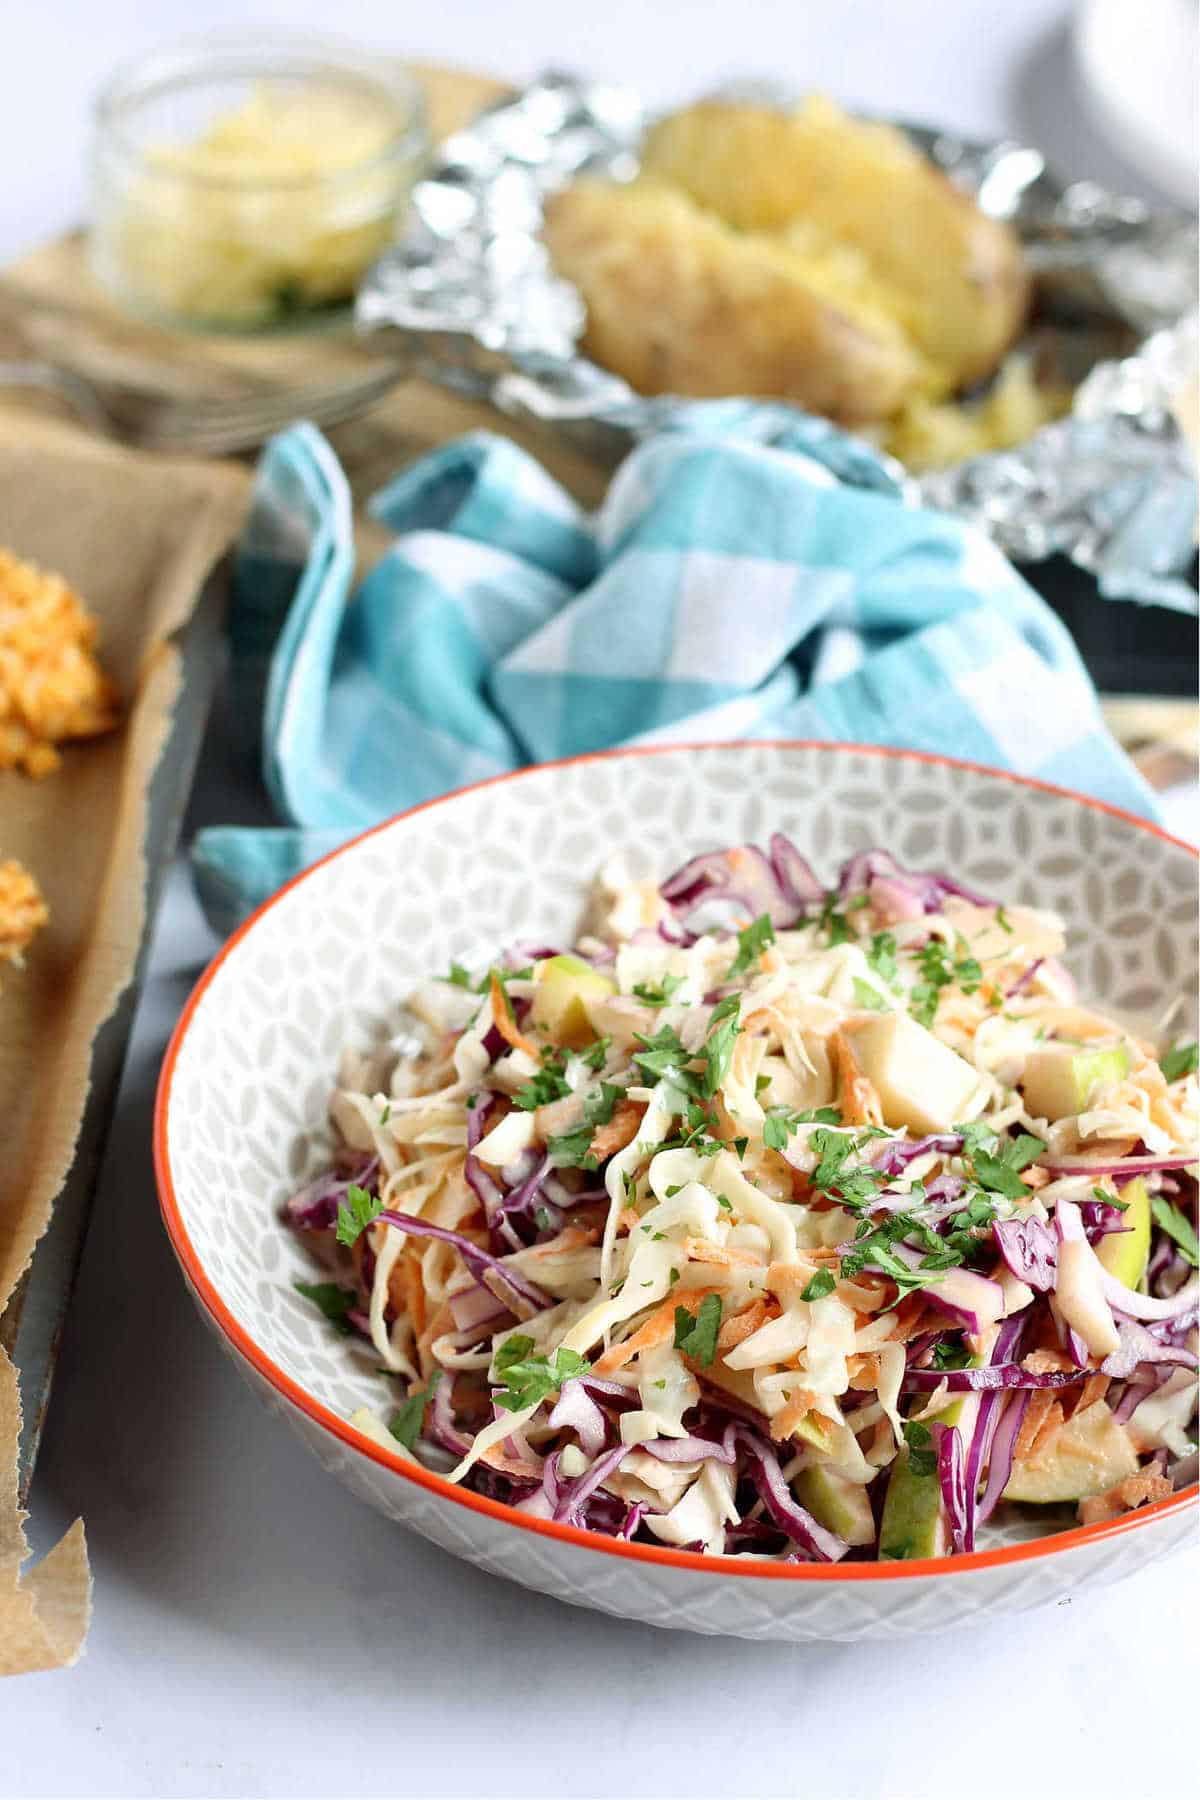 A close-up shot of homemade coleslaw.